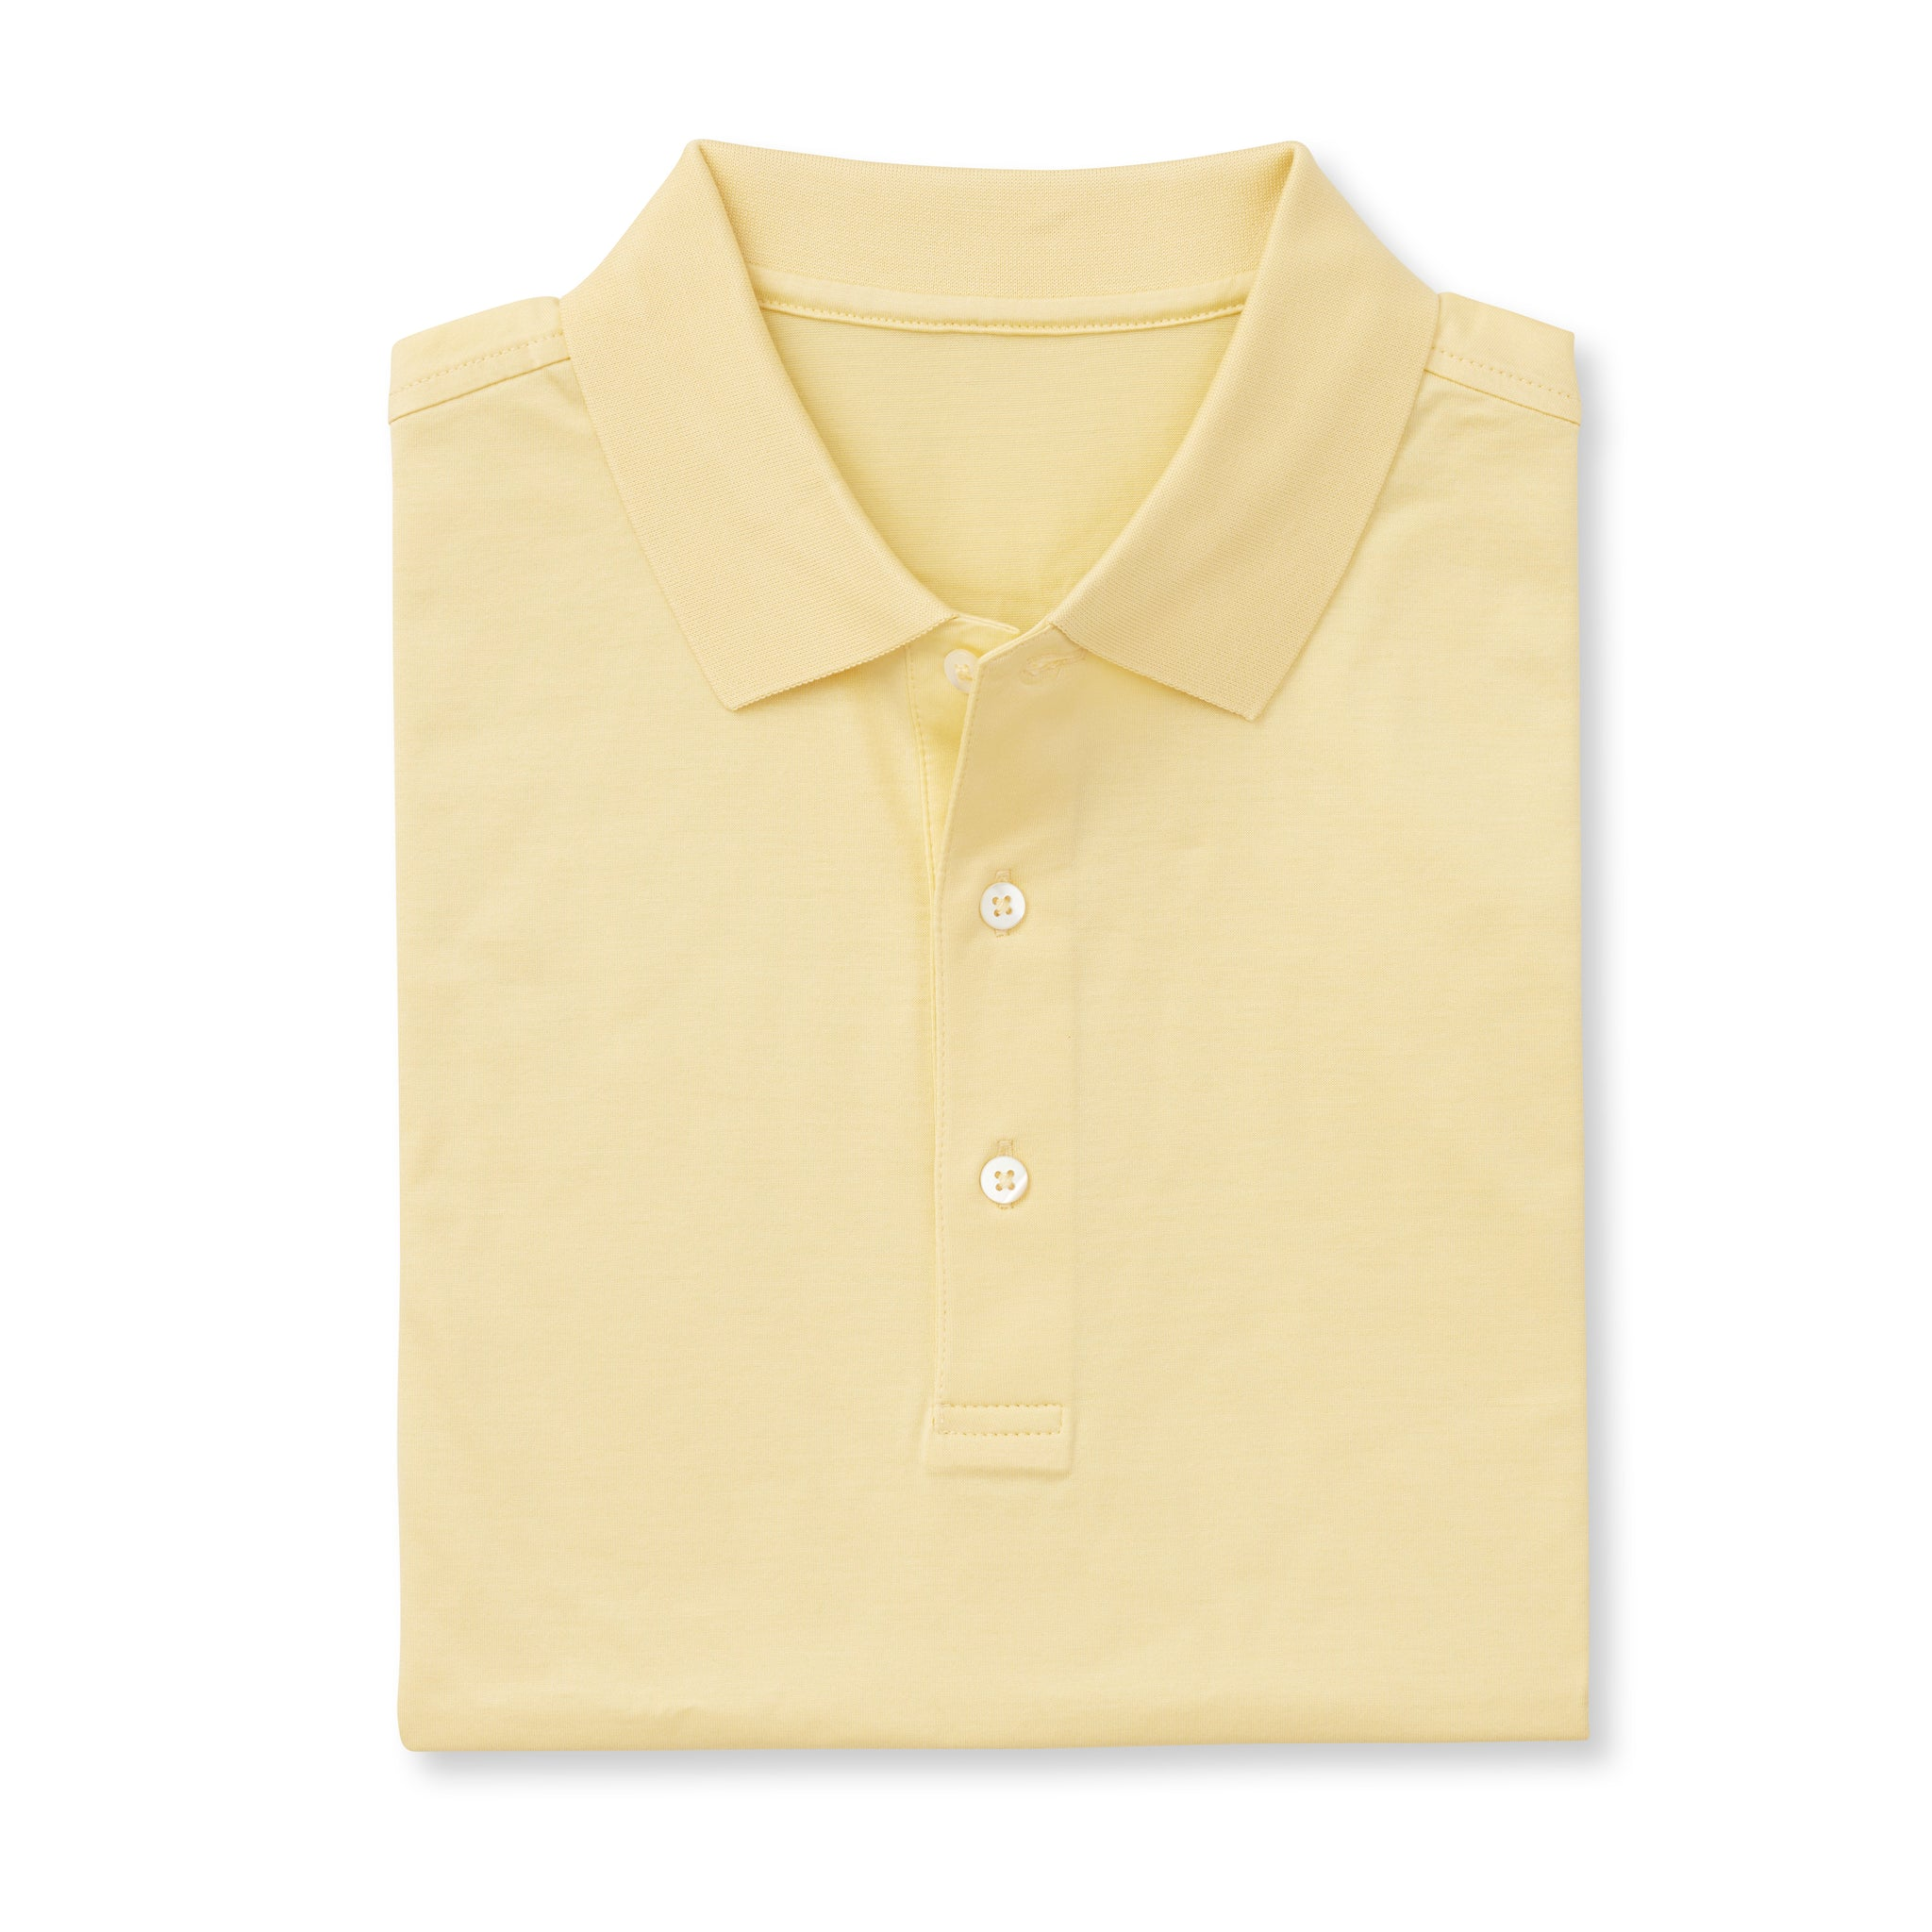 SUPIMA Short Sleeve Mercerized Polo - Yellow IS62200